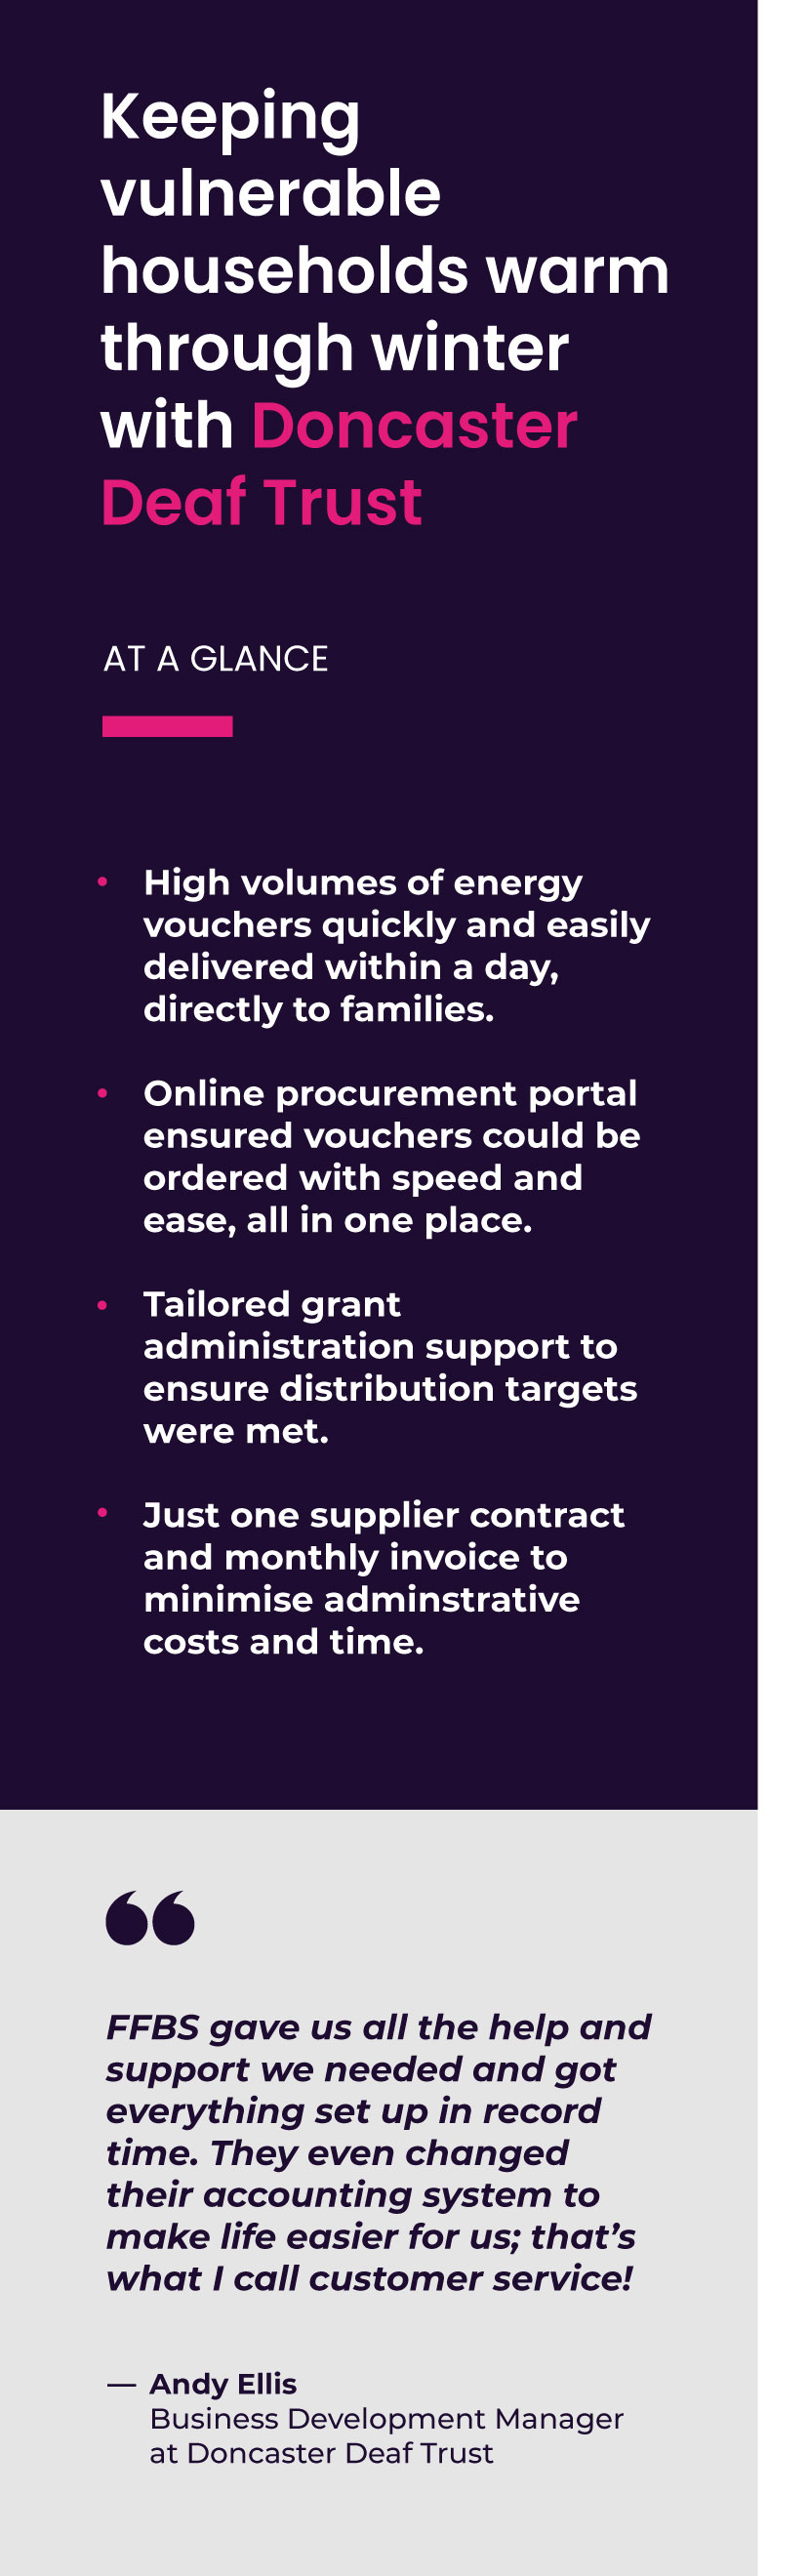 Making funding go further for Doncaster Council's Local Assistance Scheme Reduced budget pressures with supplier discounts, cash rebates and excellent support packages thanks to our purchasing power. Orders made online through our bespoke procurement portal, meaning just one supplier contract and one monthly invoice. Essential items delivered straight to where they're needed and installed quickly and efficiently.